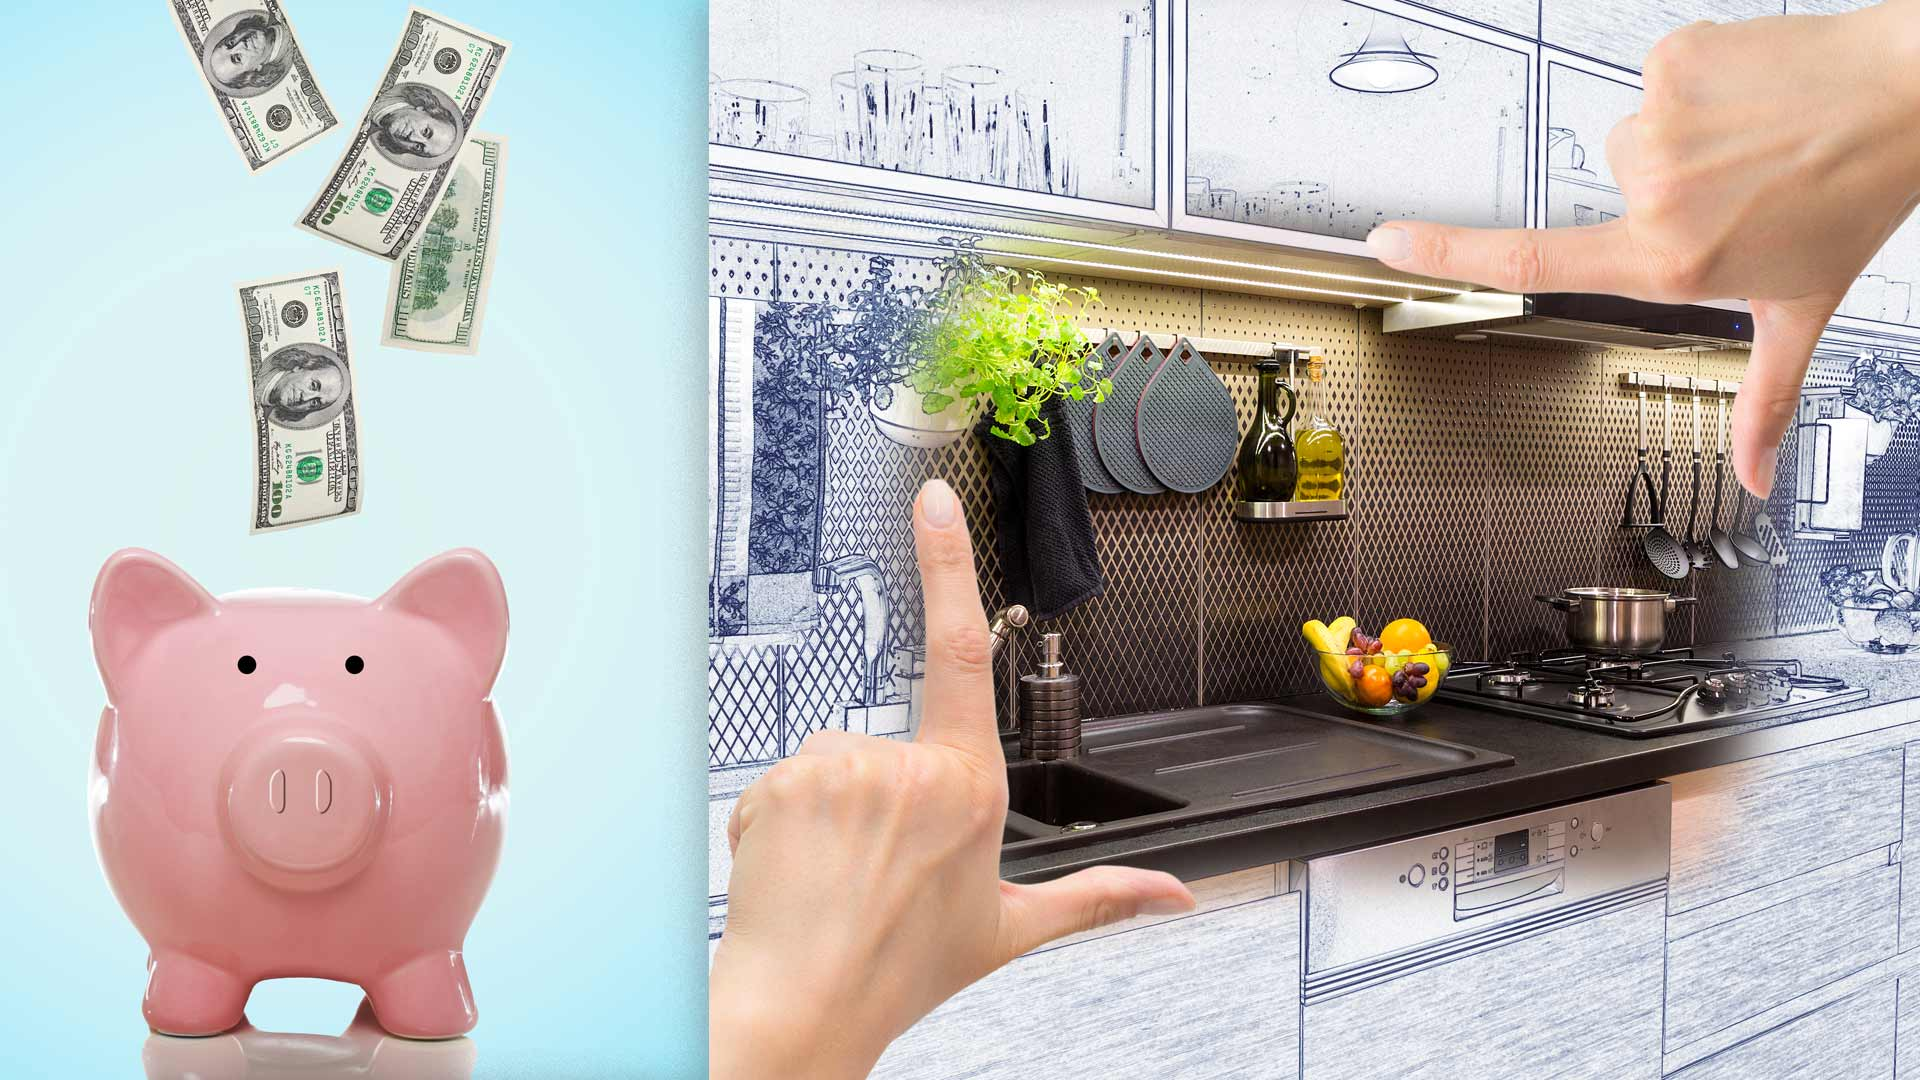 Dollars falling into piggy bank and architect's rendering of remodeled kitchen